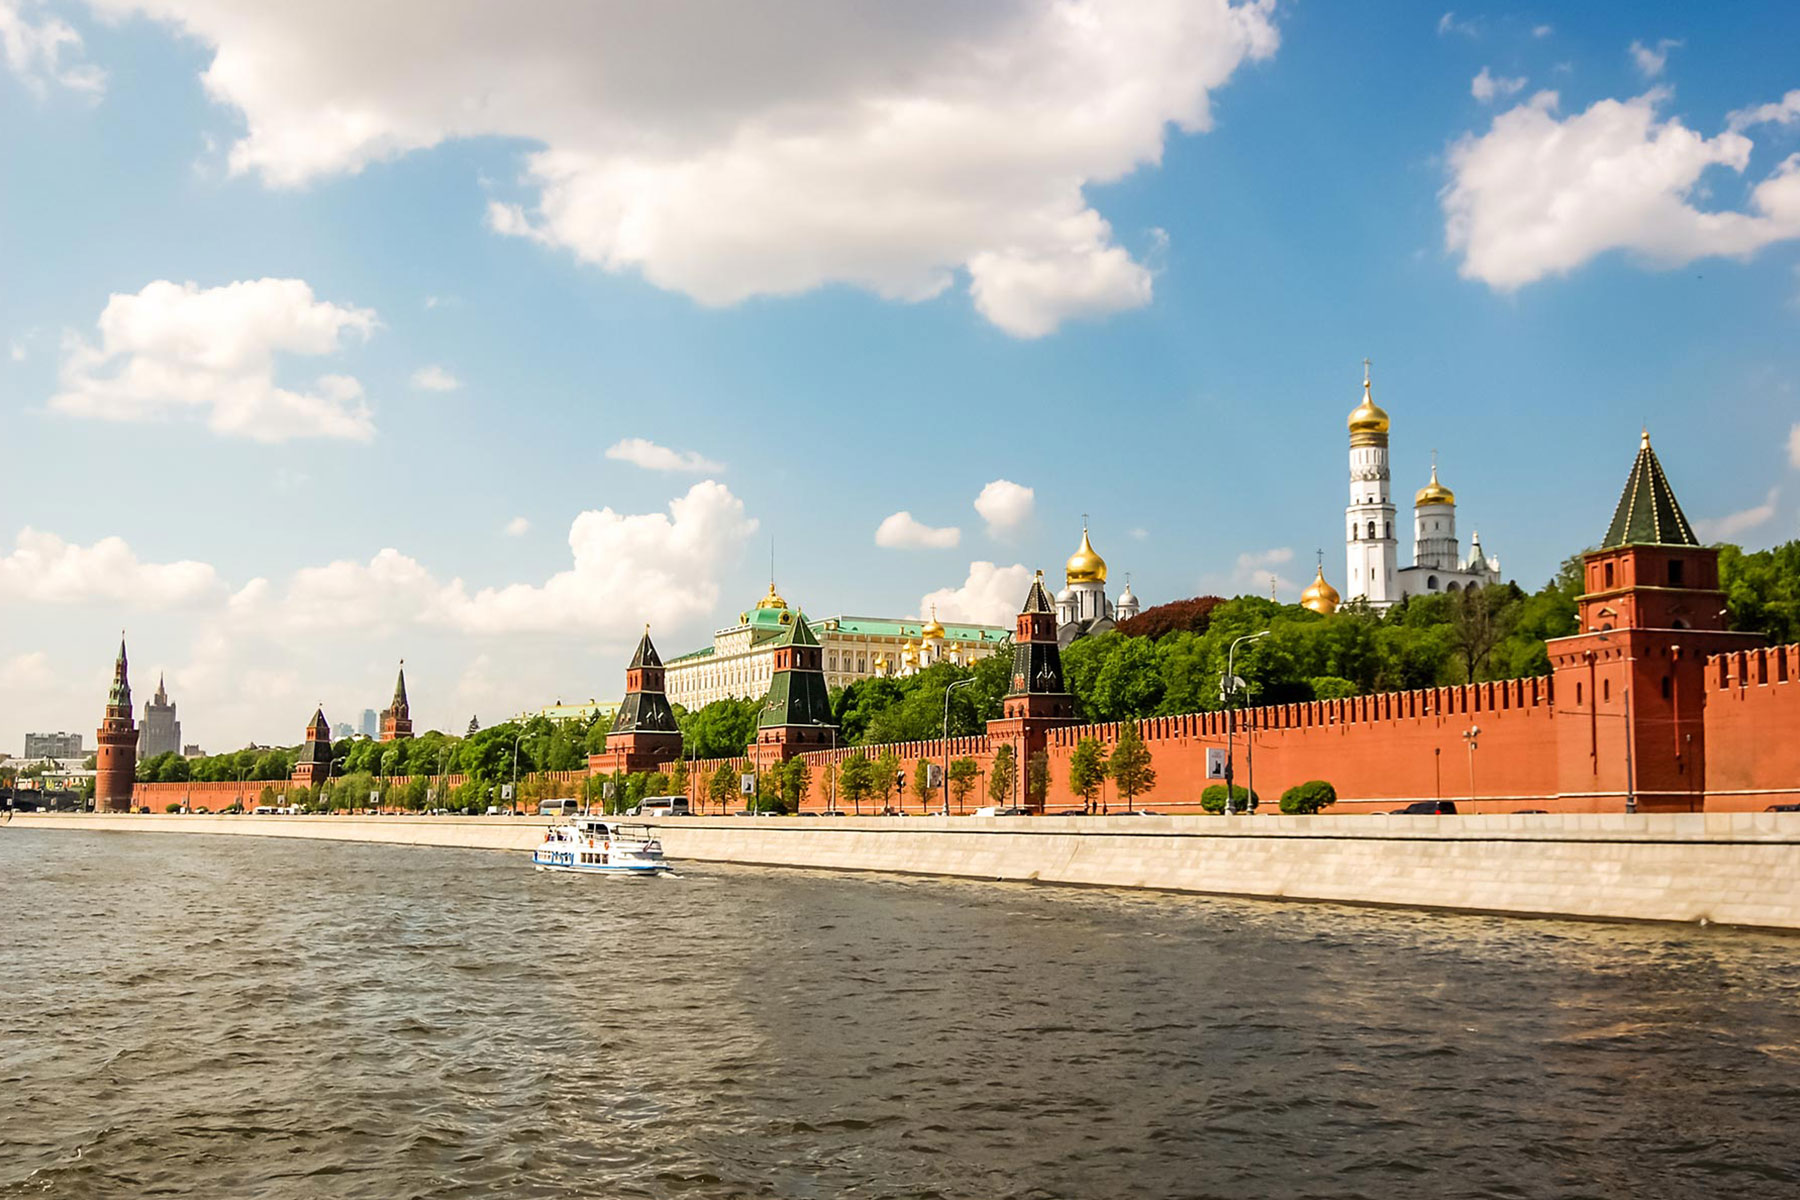 the-kremlin-on-the-banks-of-the-moscow-river-M4HDV79